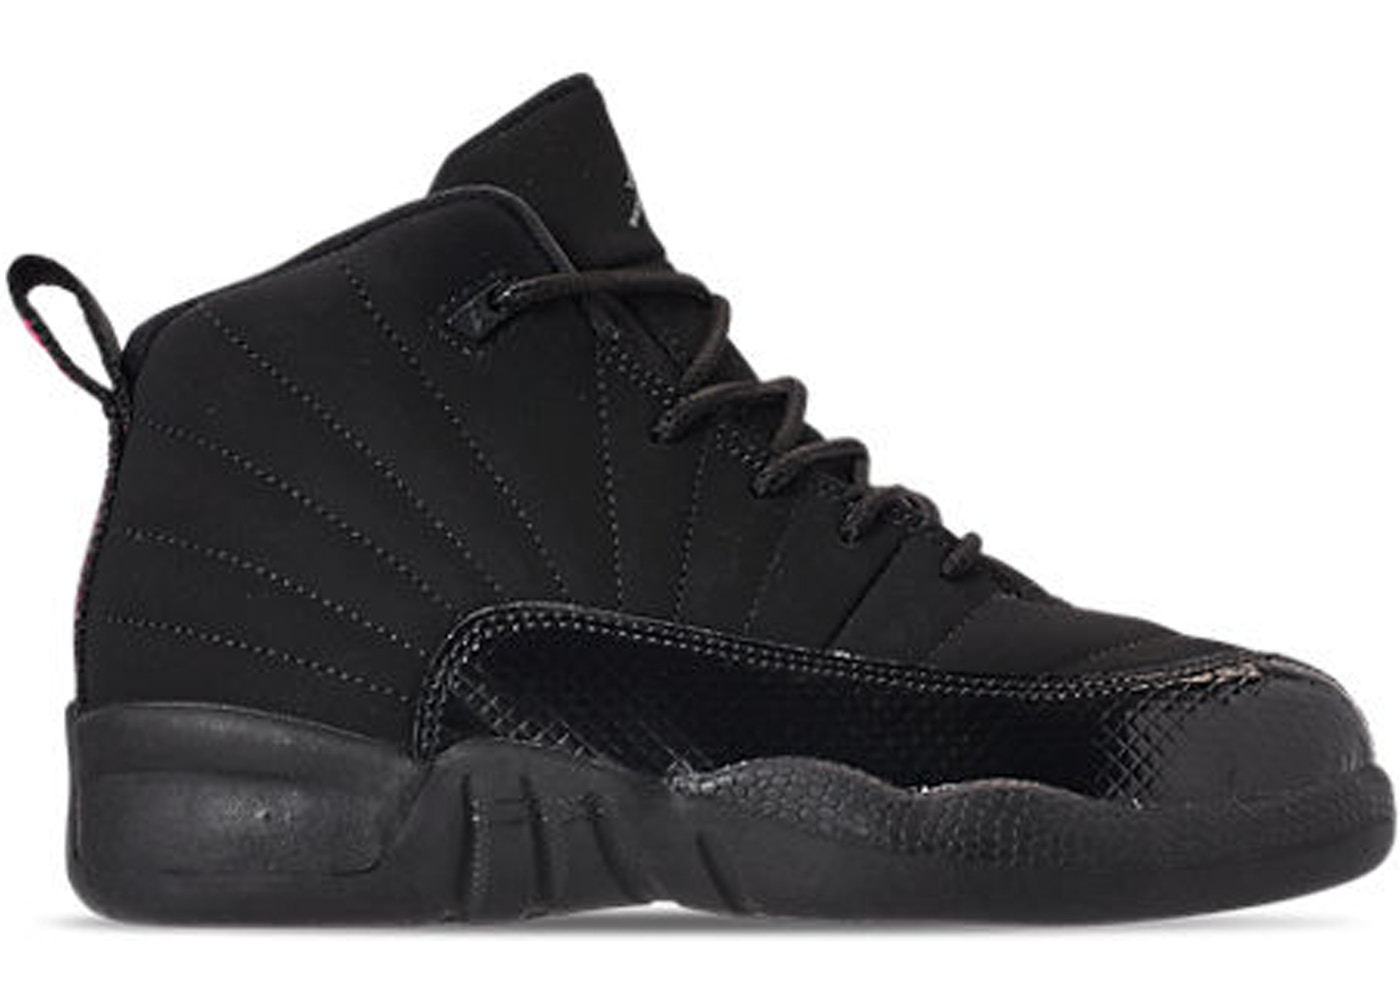 huge discount b494d 142e1 Jordan 12 Retro Black Rush Pink (PS)